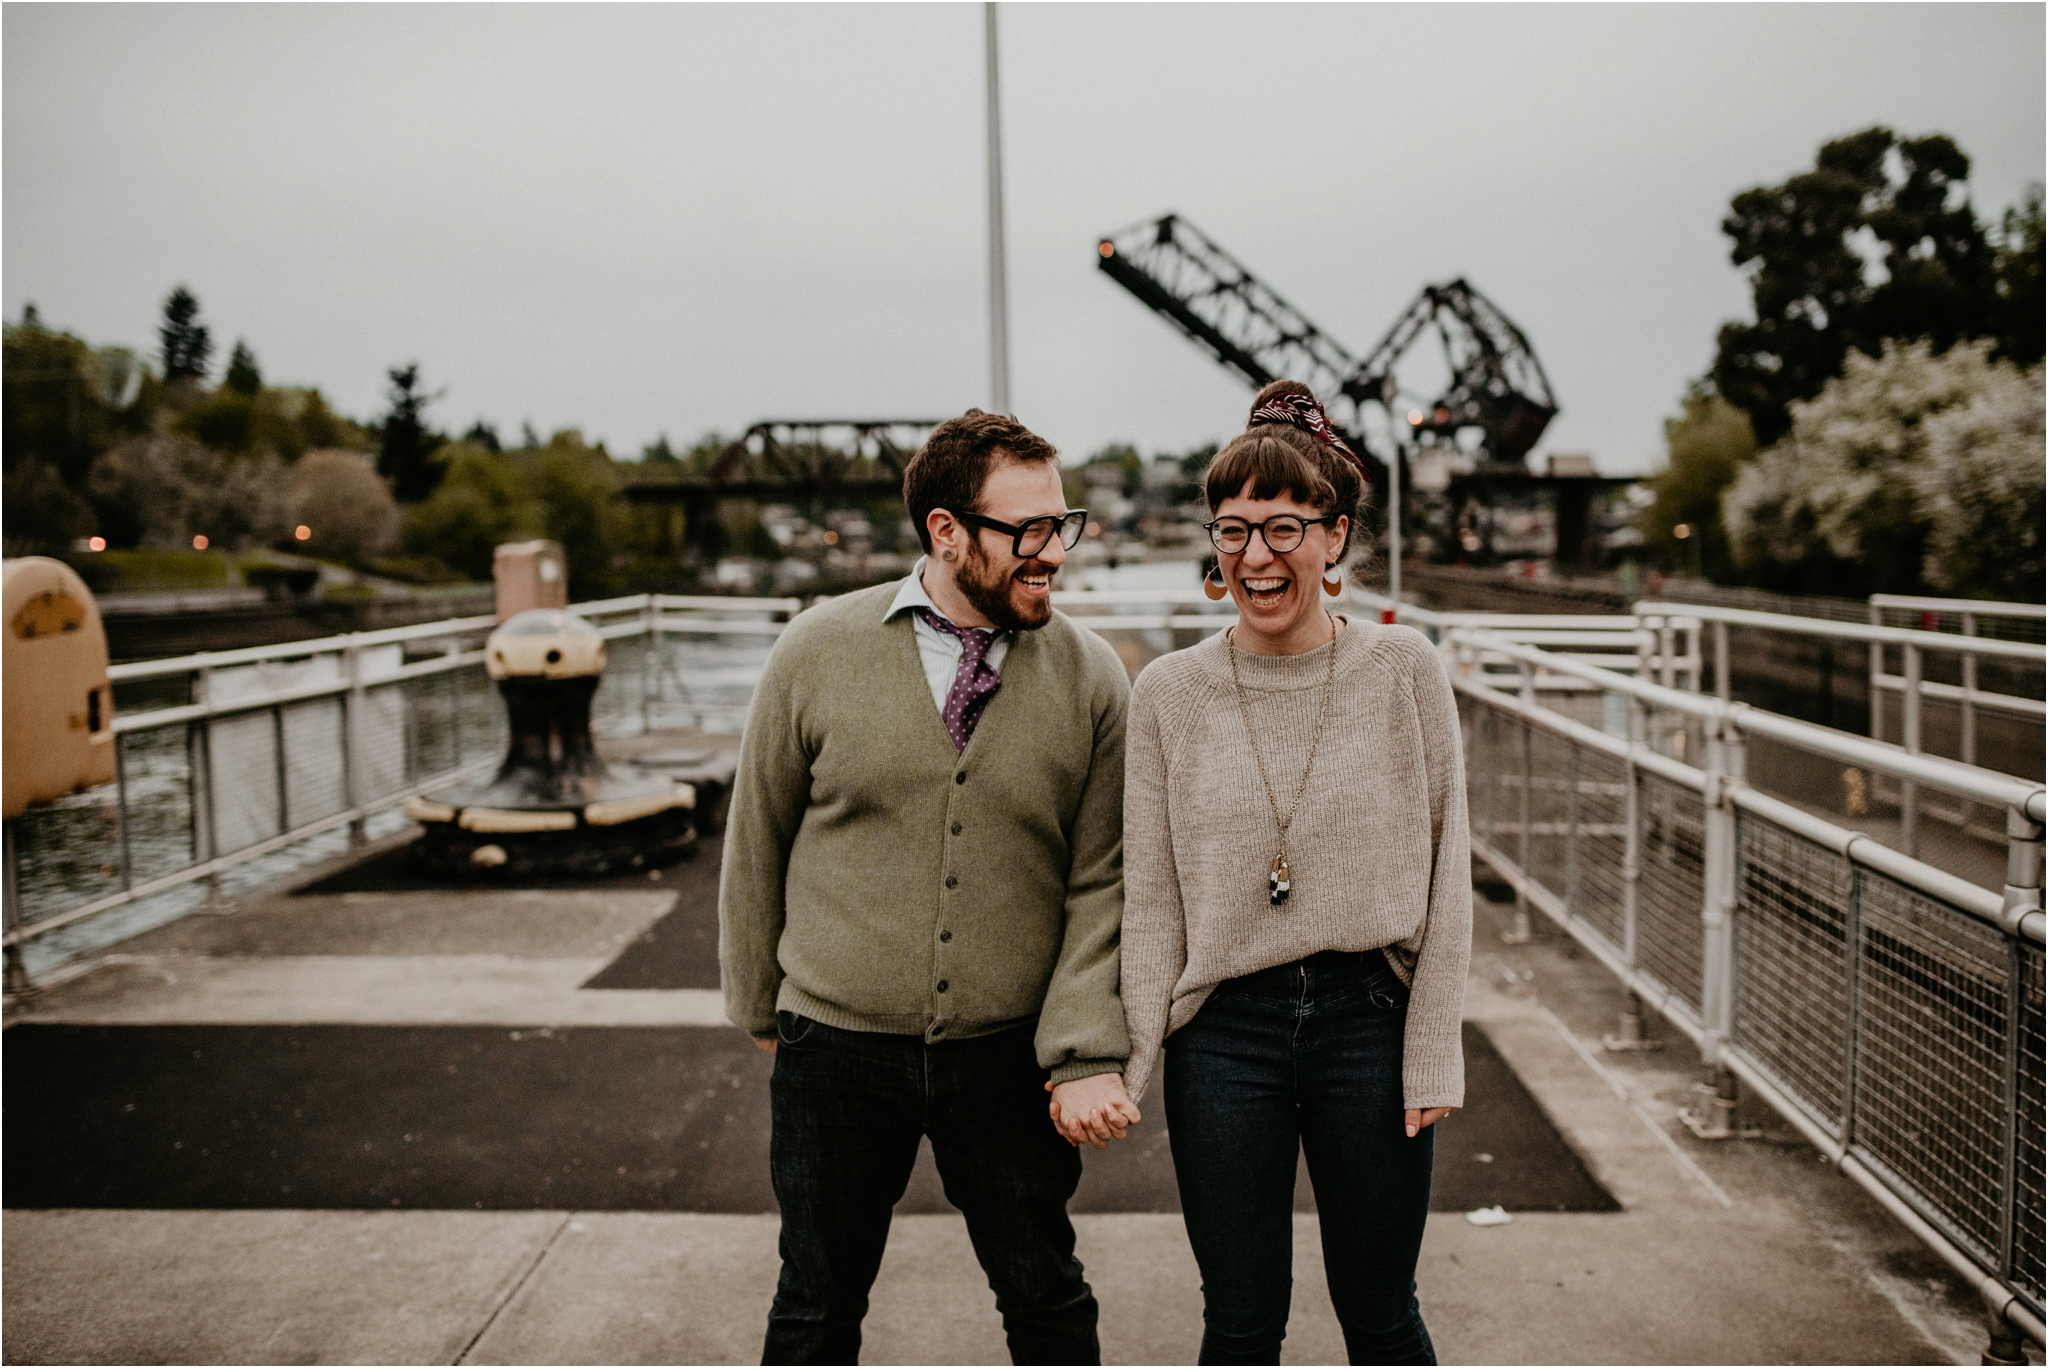 jaimie-and-jake-ballard-seattle-engagement-session-037.jpg